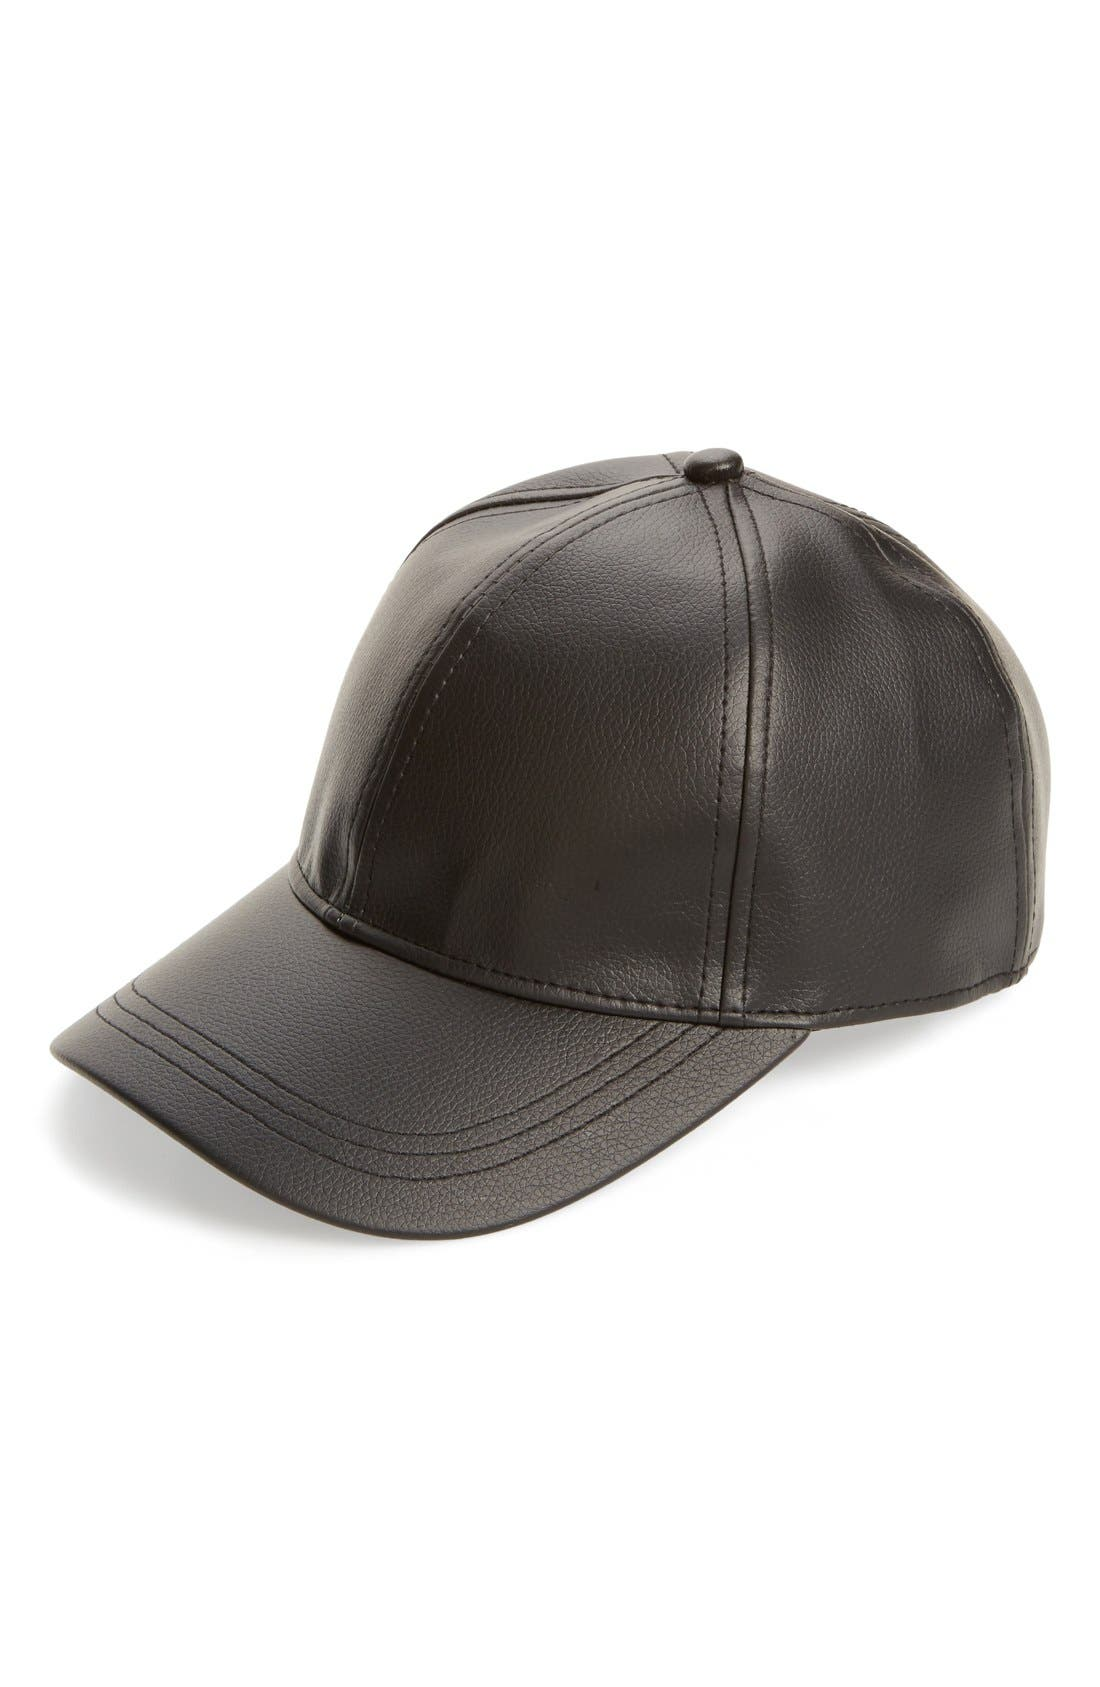 Main Image - August Hat Faux Leather Baseball Cap